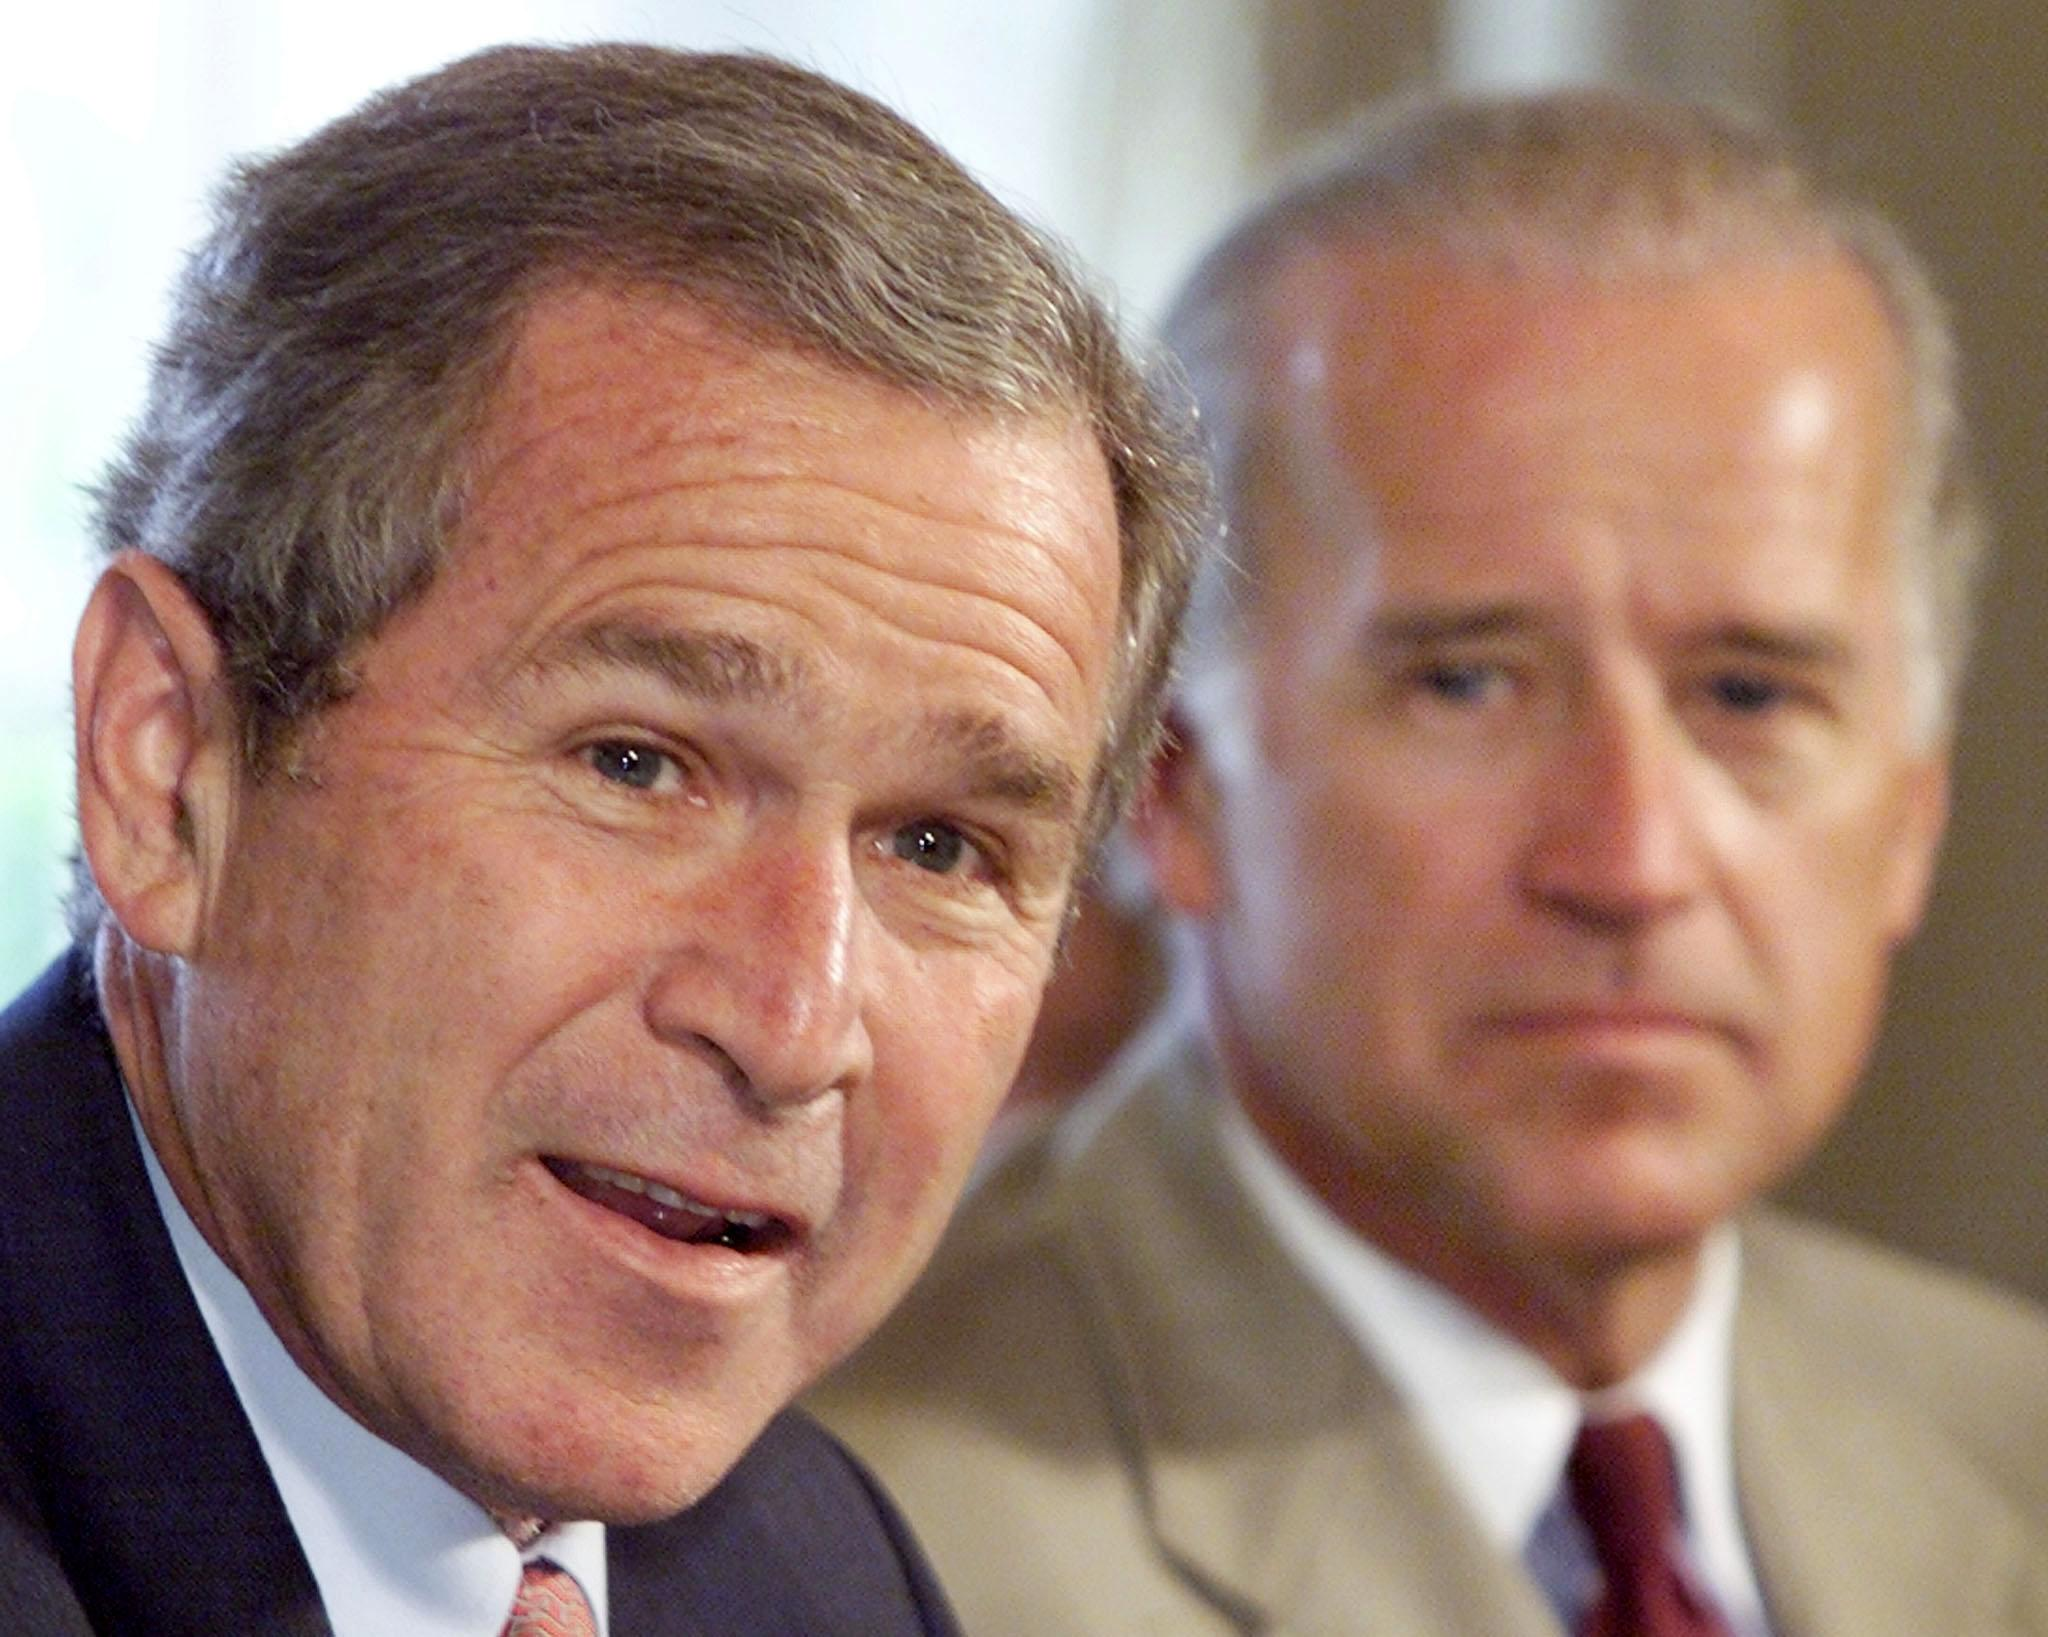 Biden and Bush